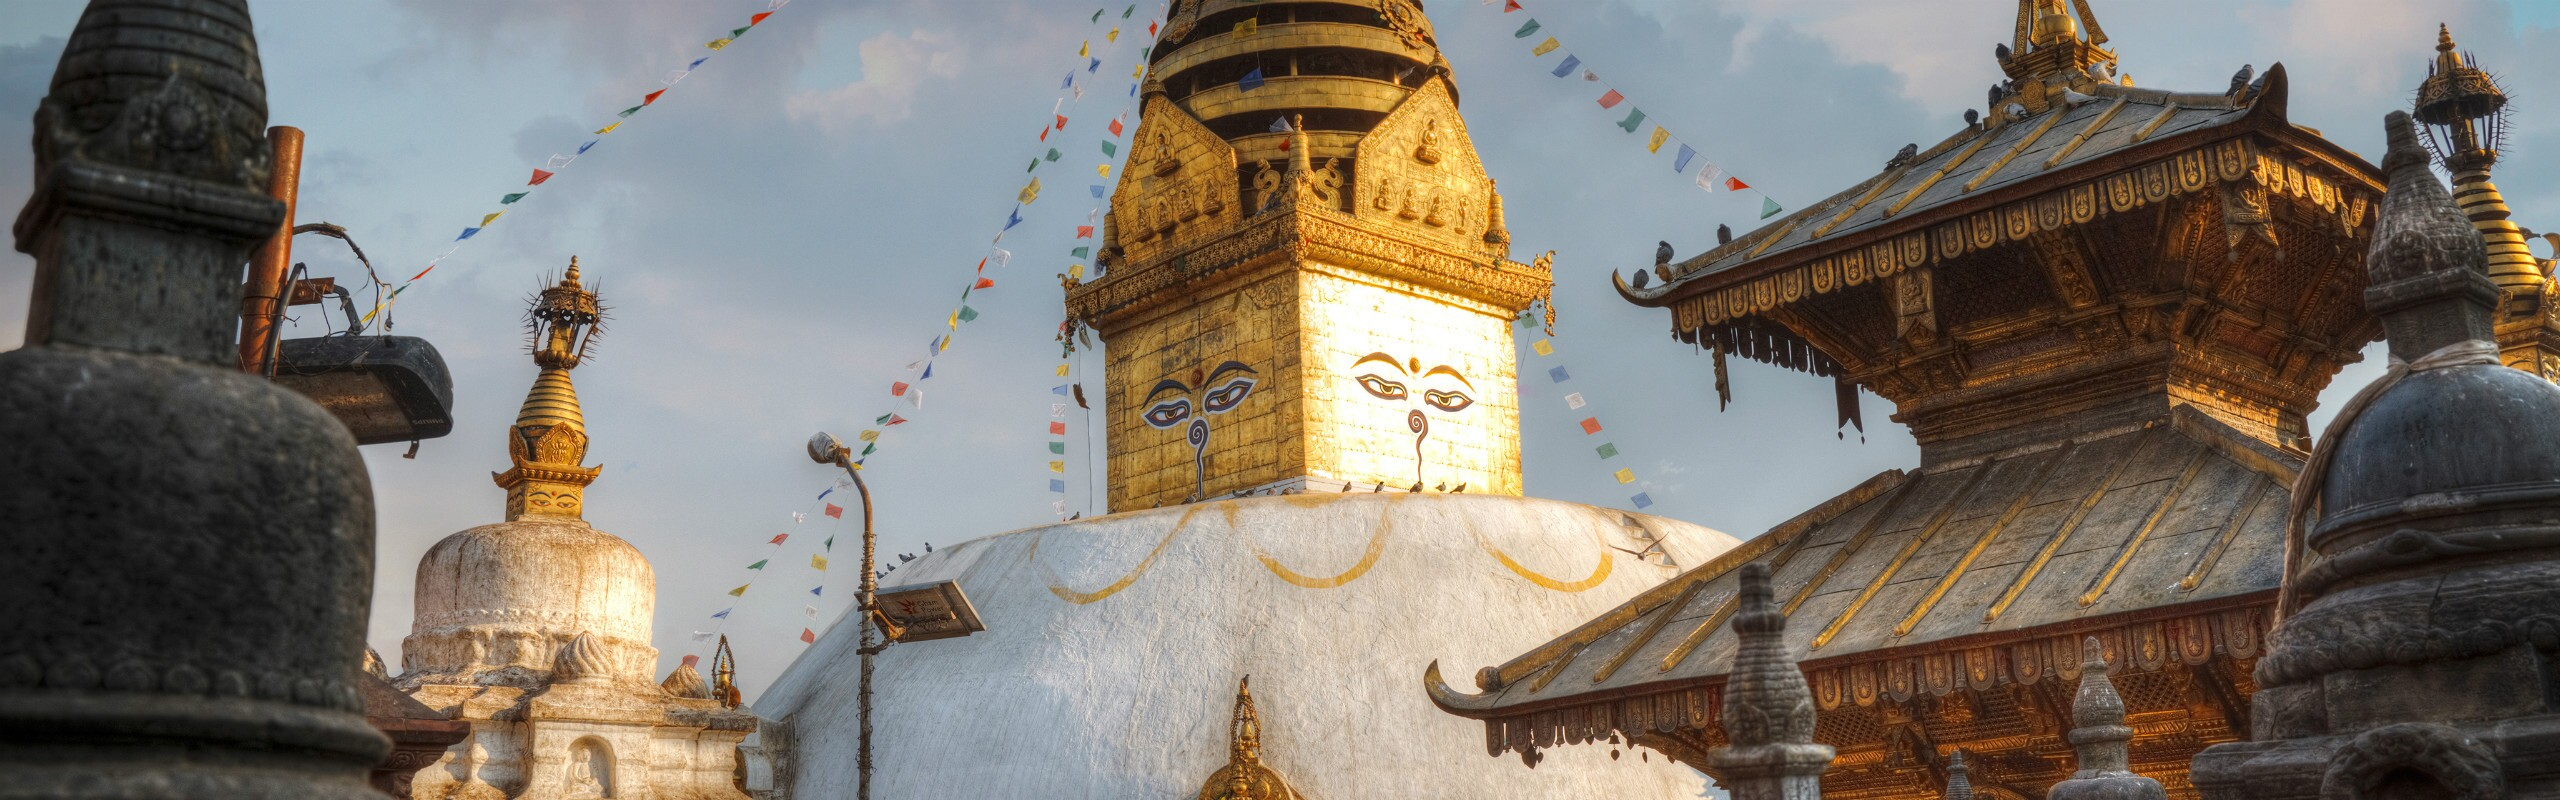 11-Day Overland Trip from Lhasa to Kathmandu